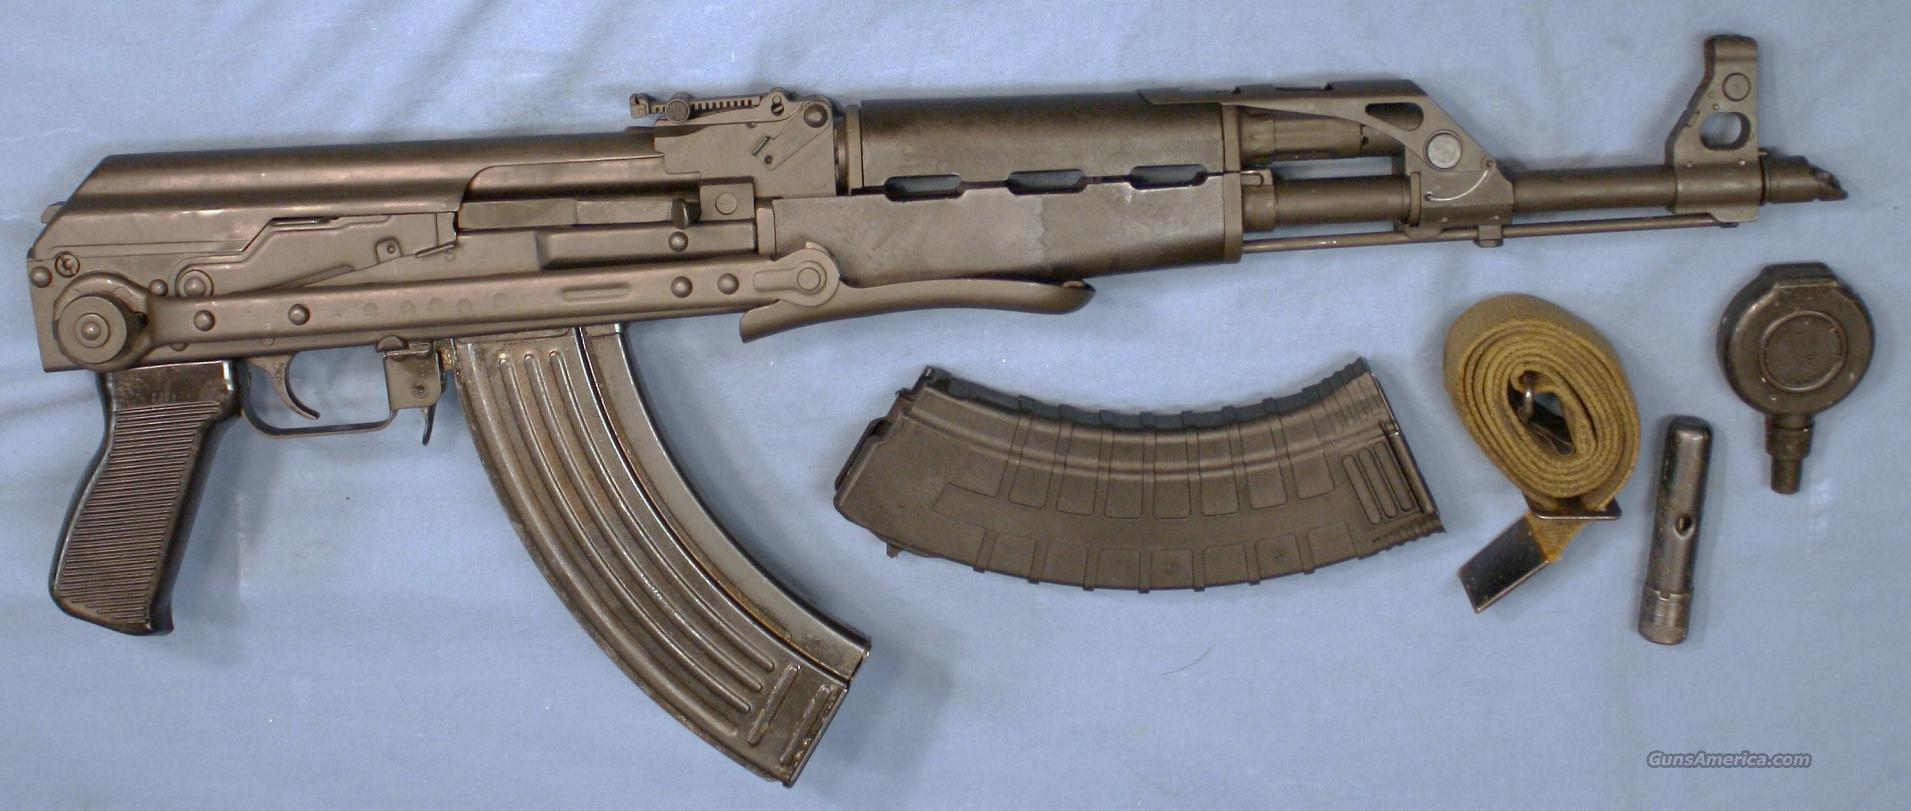 Century Arms Yugoslav M70AB2 AK-47 Underfolder Semi-Automatic Rifle 7.62x39mm  Guns > Rifles > Century International Arms - Rifles > Rifles